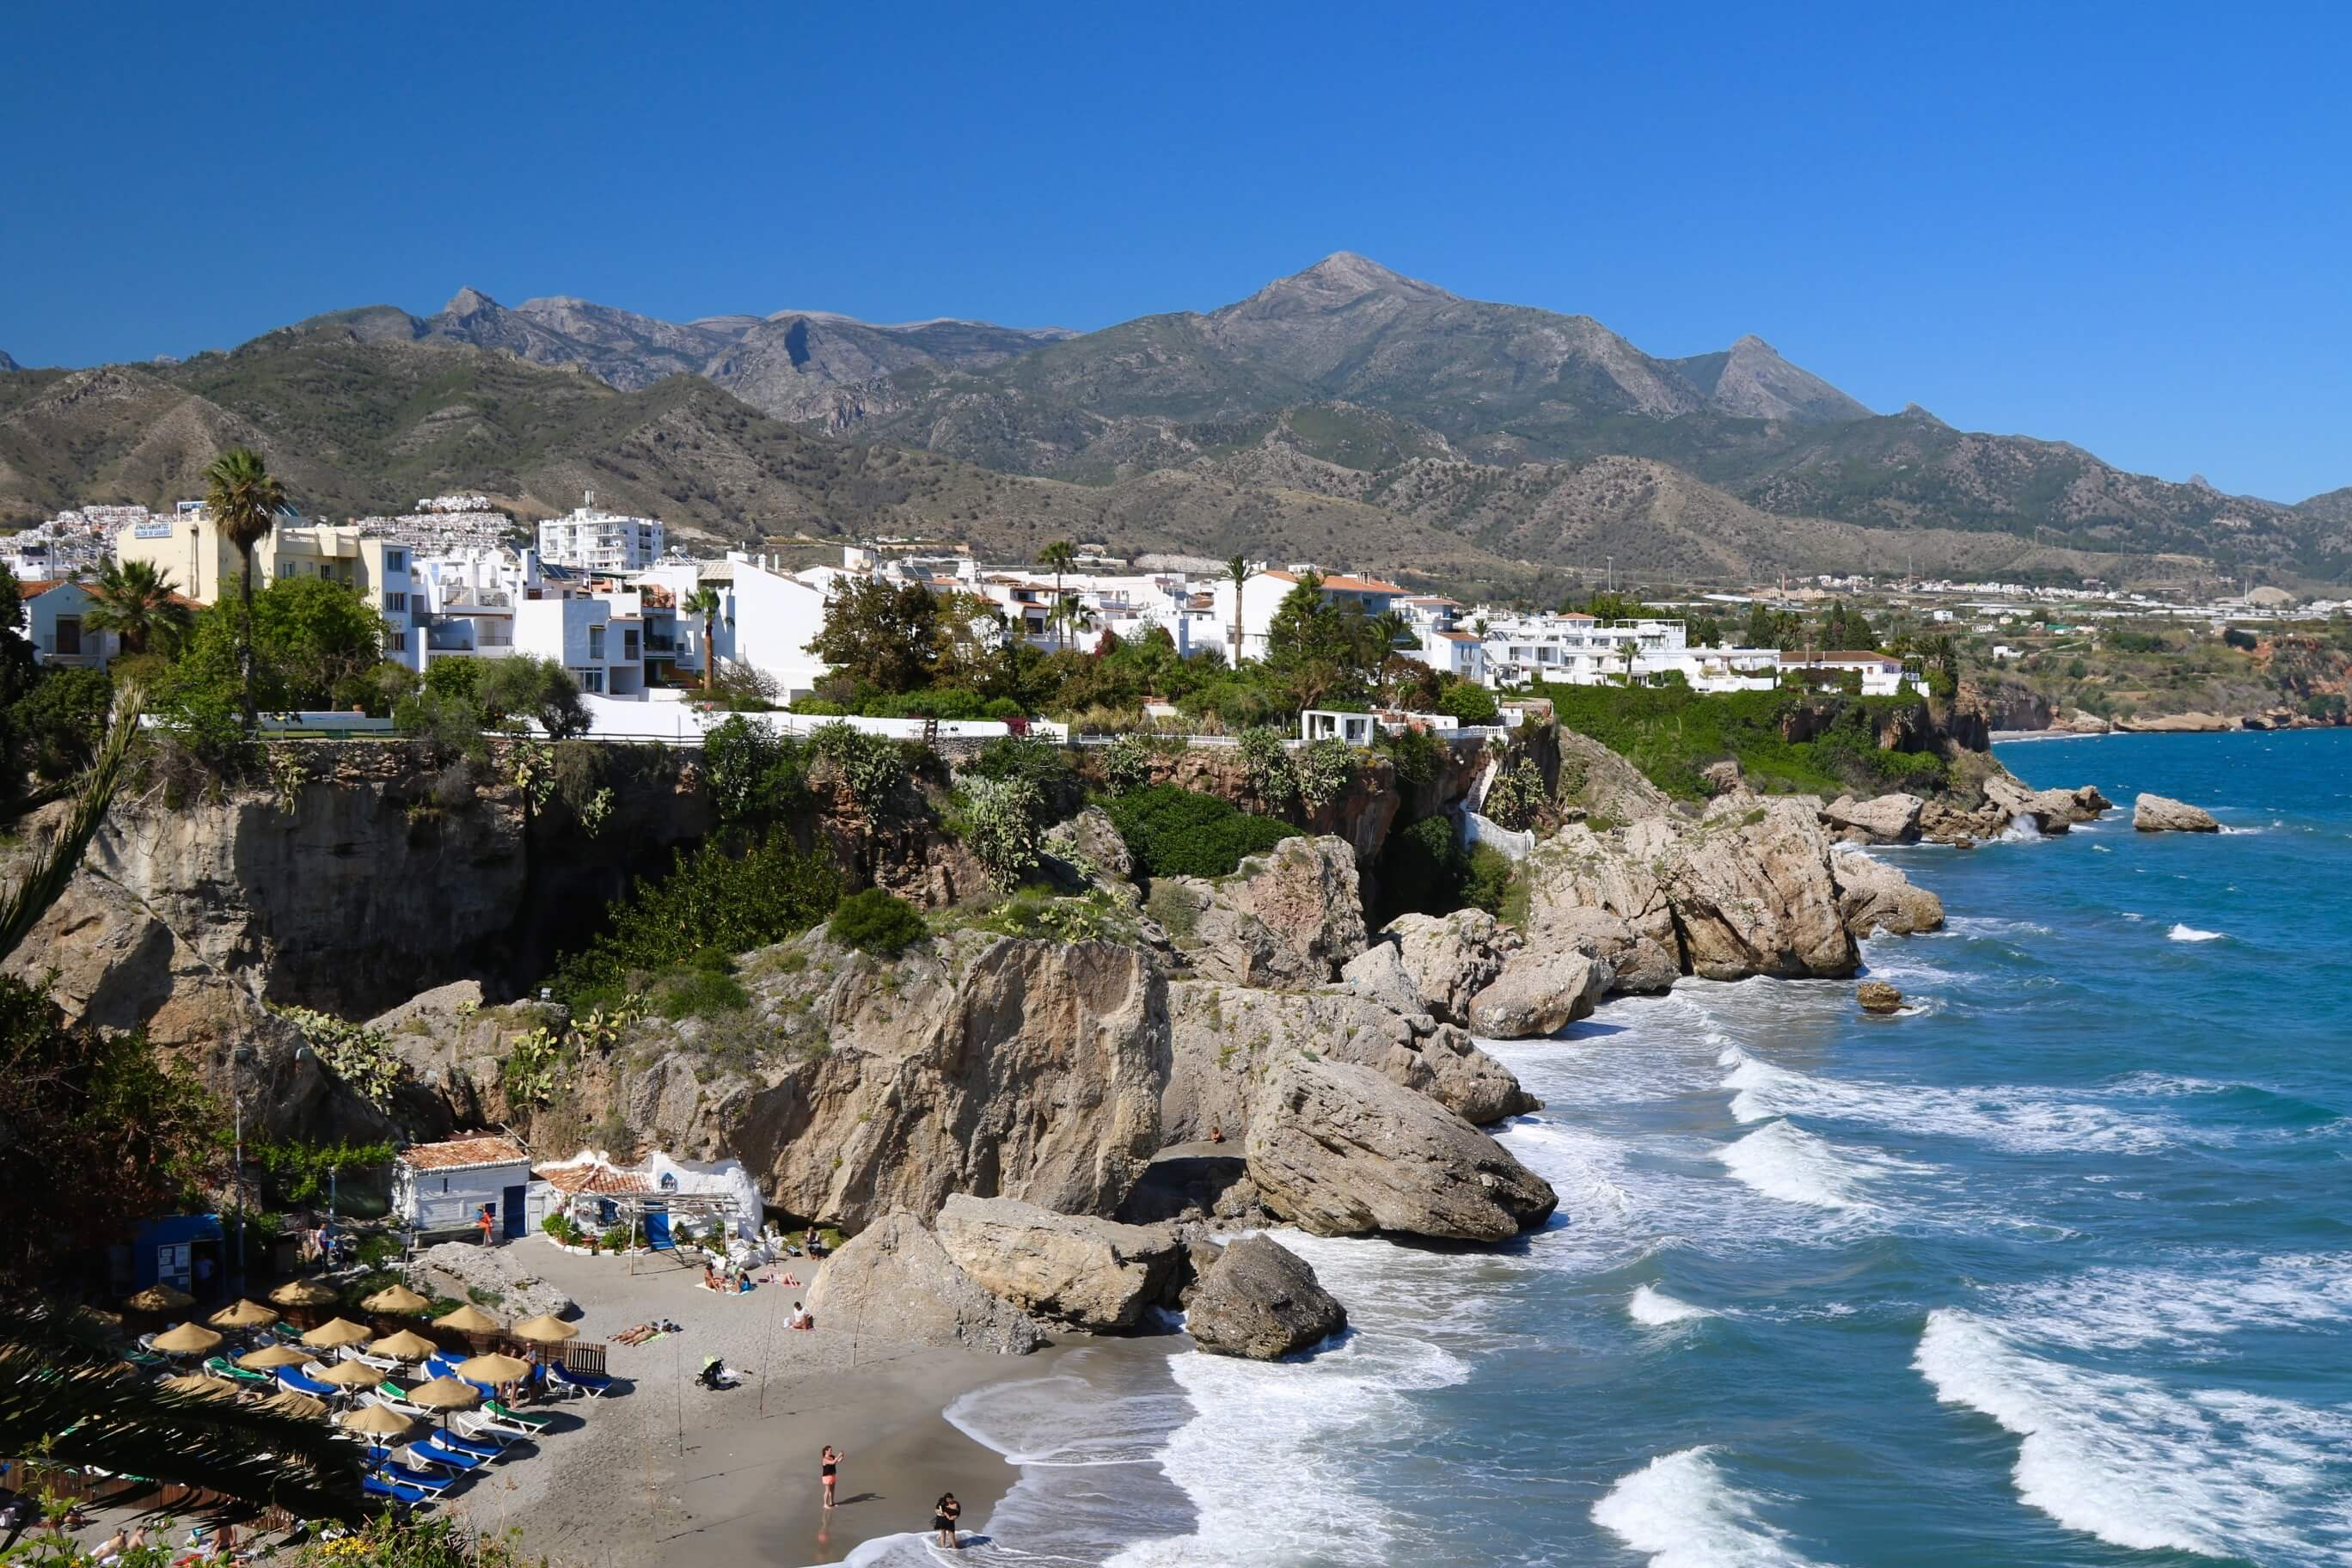 Beautiful Beaches - Why Spain Should be Your Next Culinary Destination, Delectable Destinations, Carol Ketelson